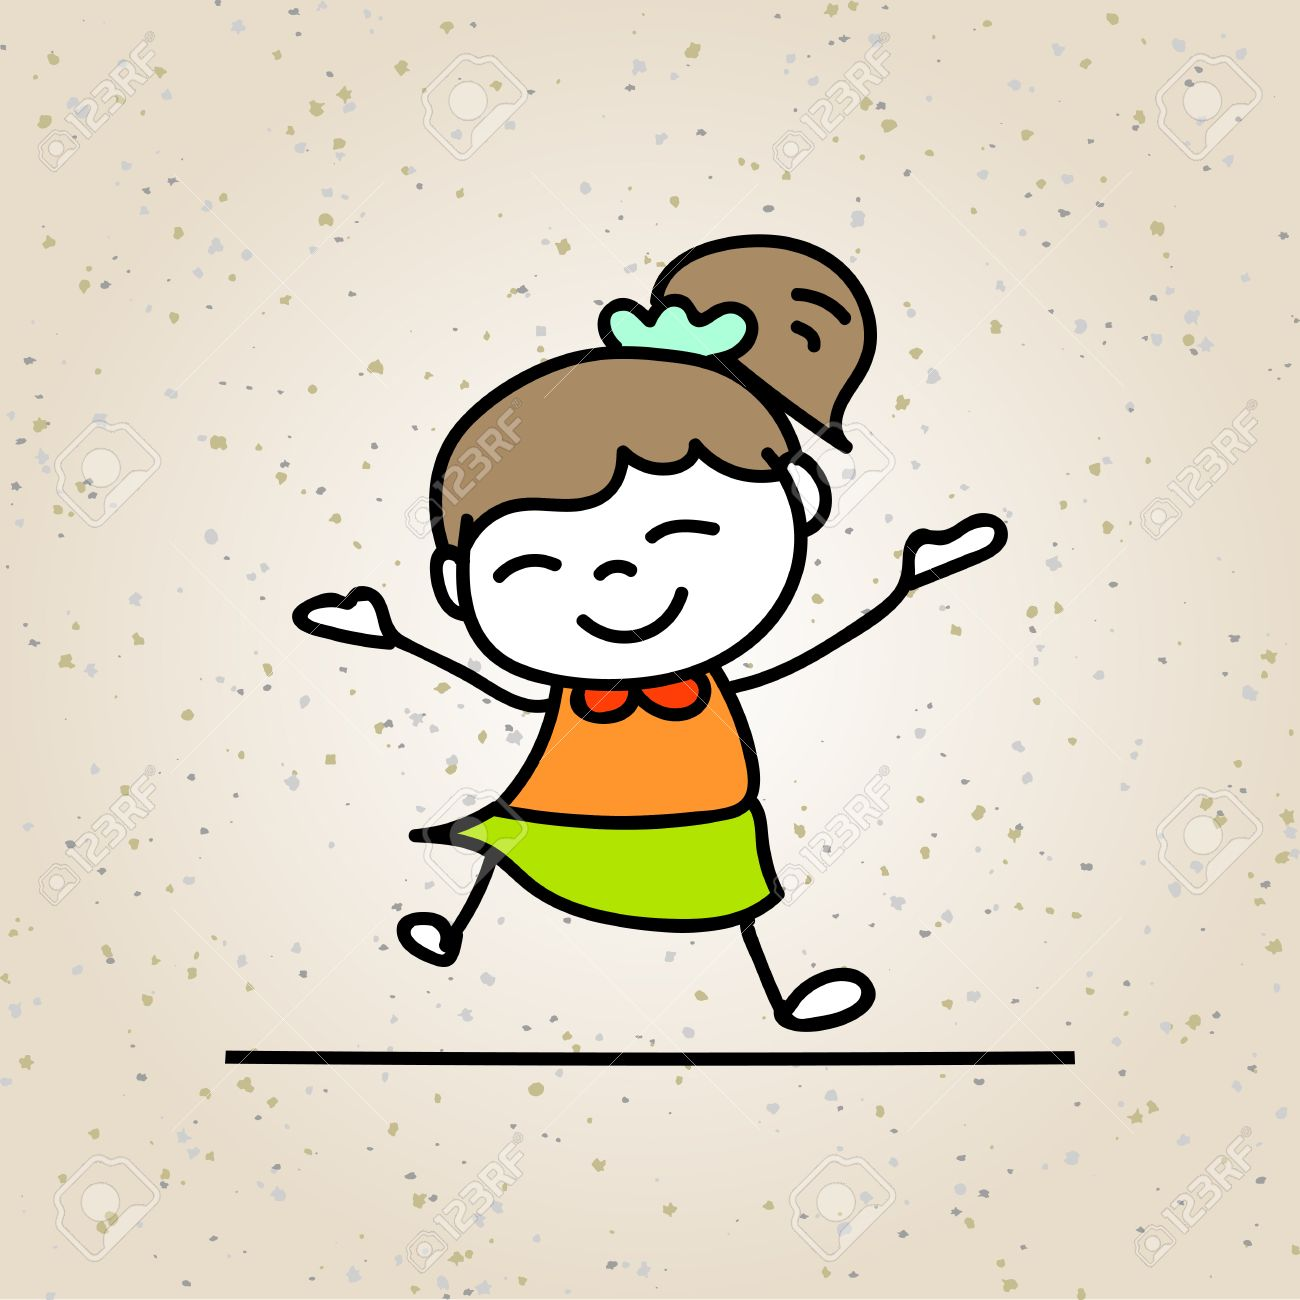 Drawing colorful happiness cartoon concept happy girl character of kid smile with joy illustration